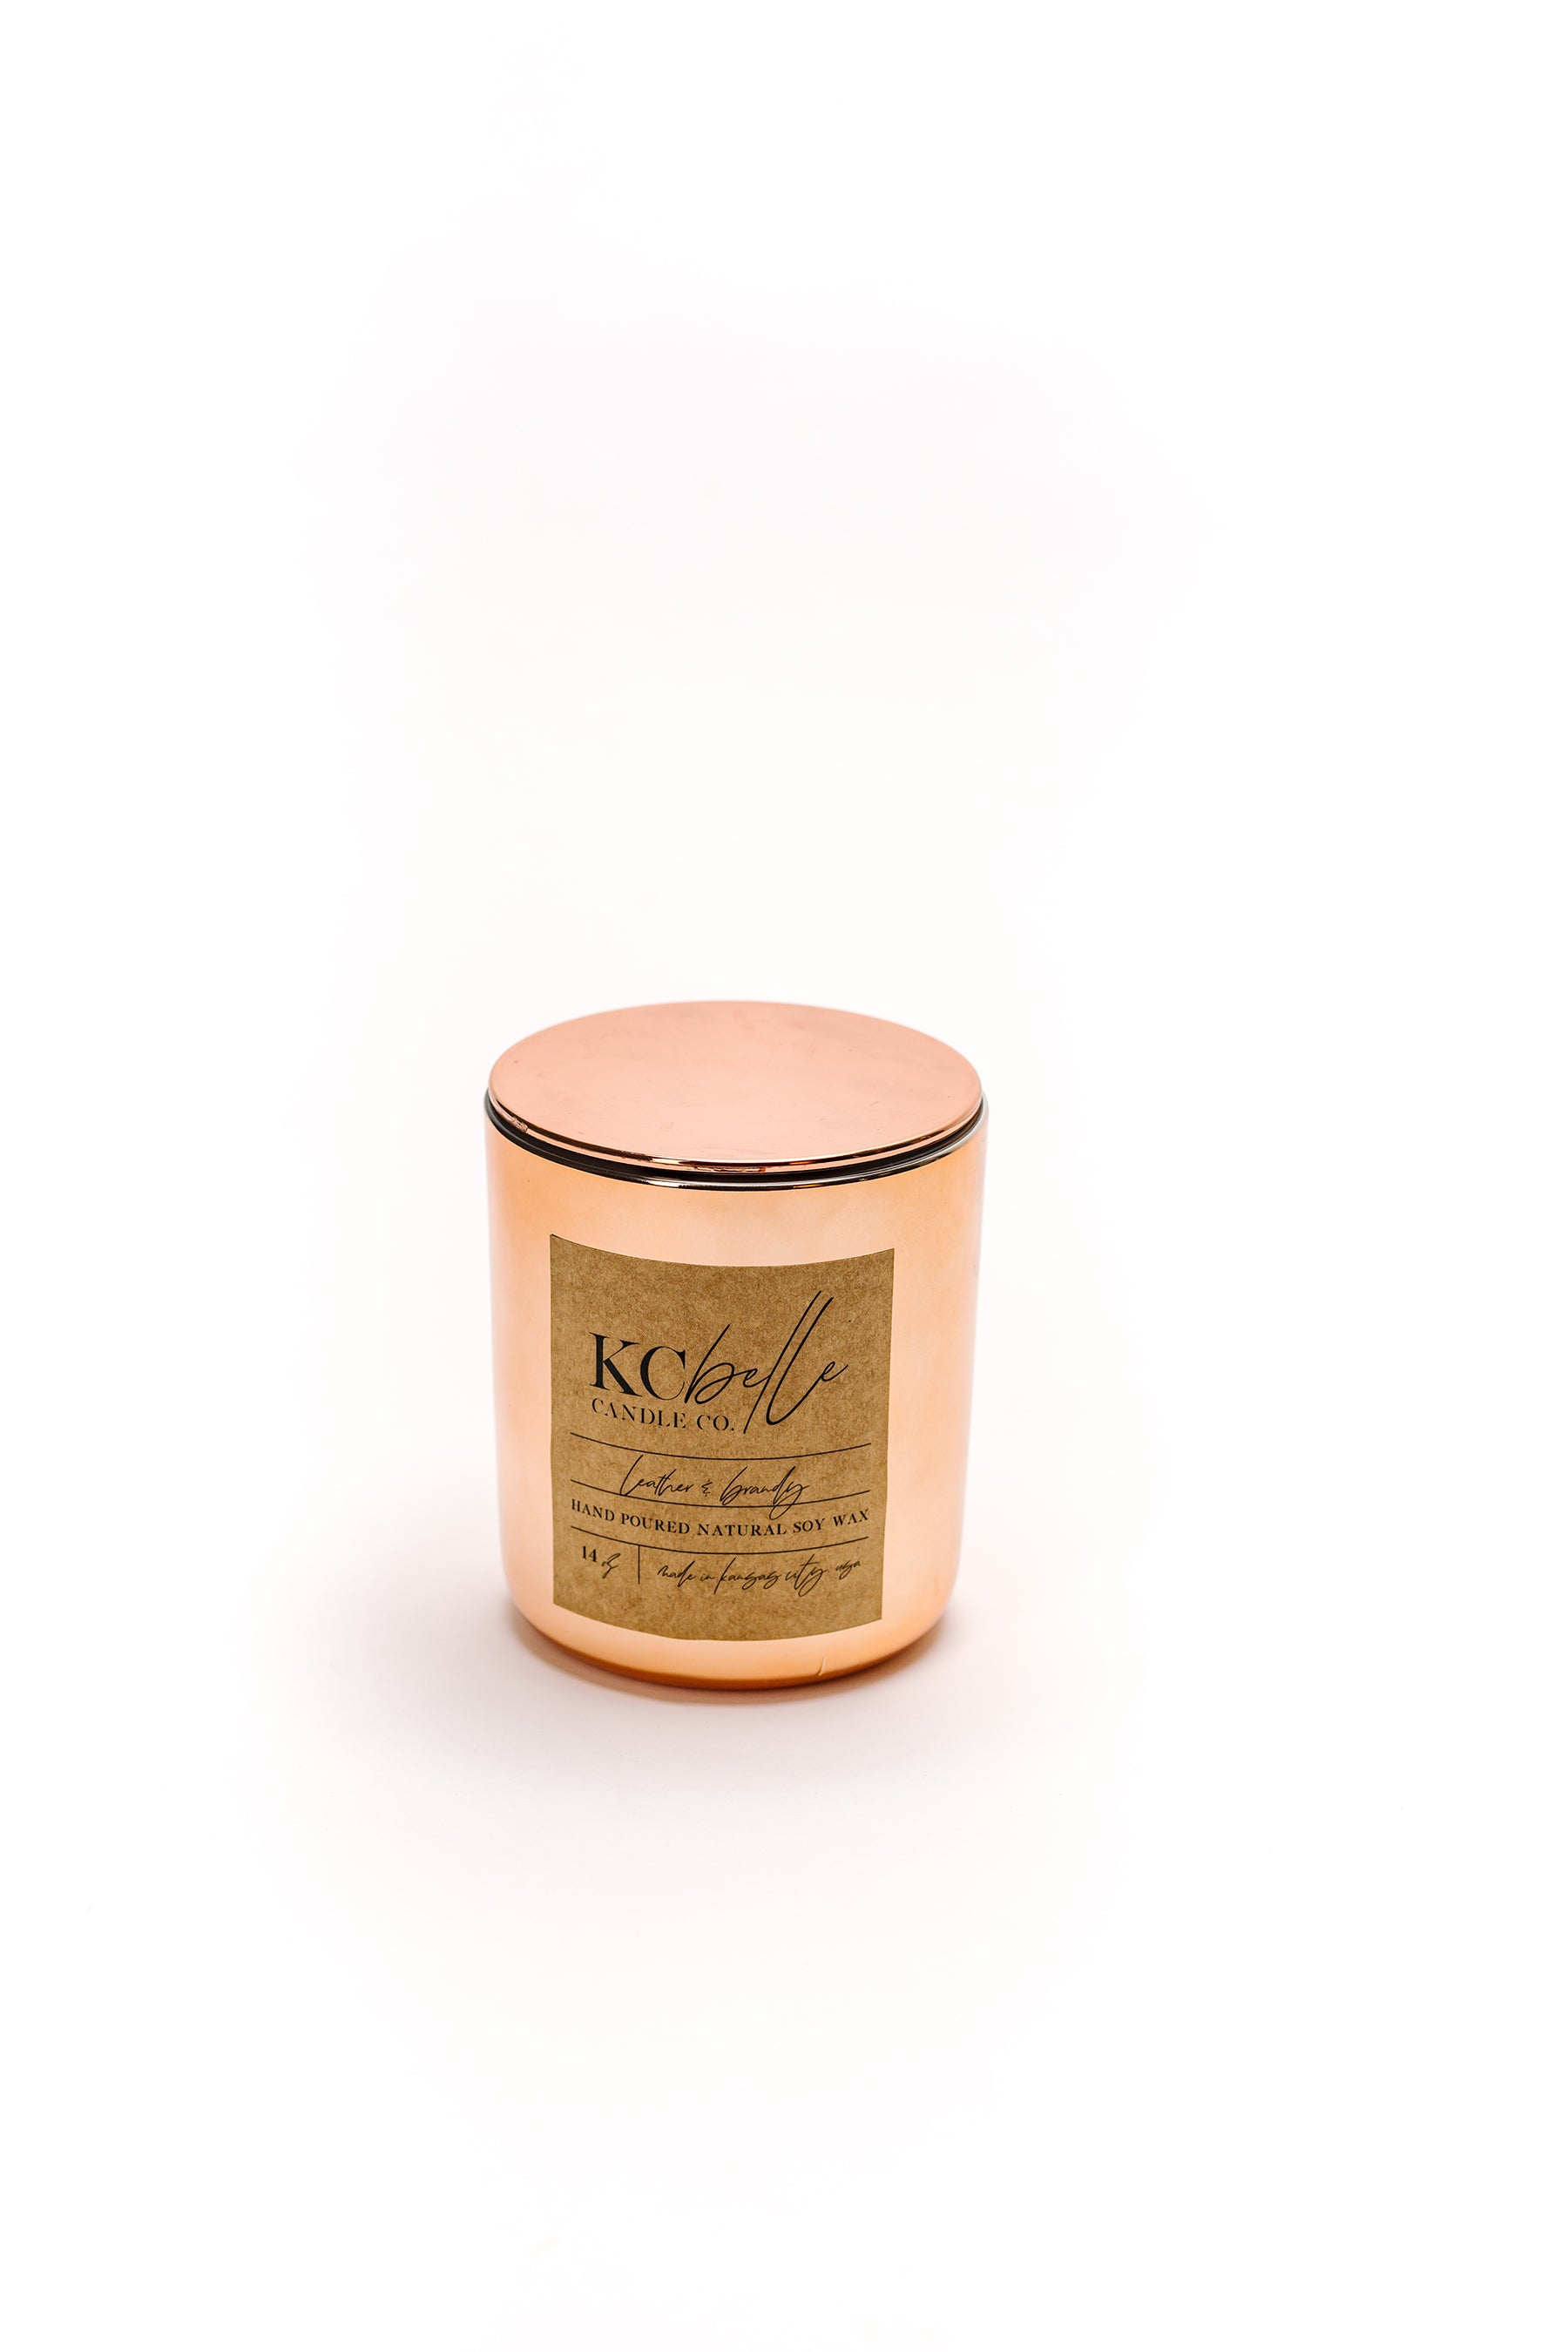 Leather & Brandy - 14 oz. Candle